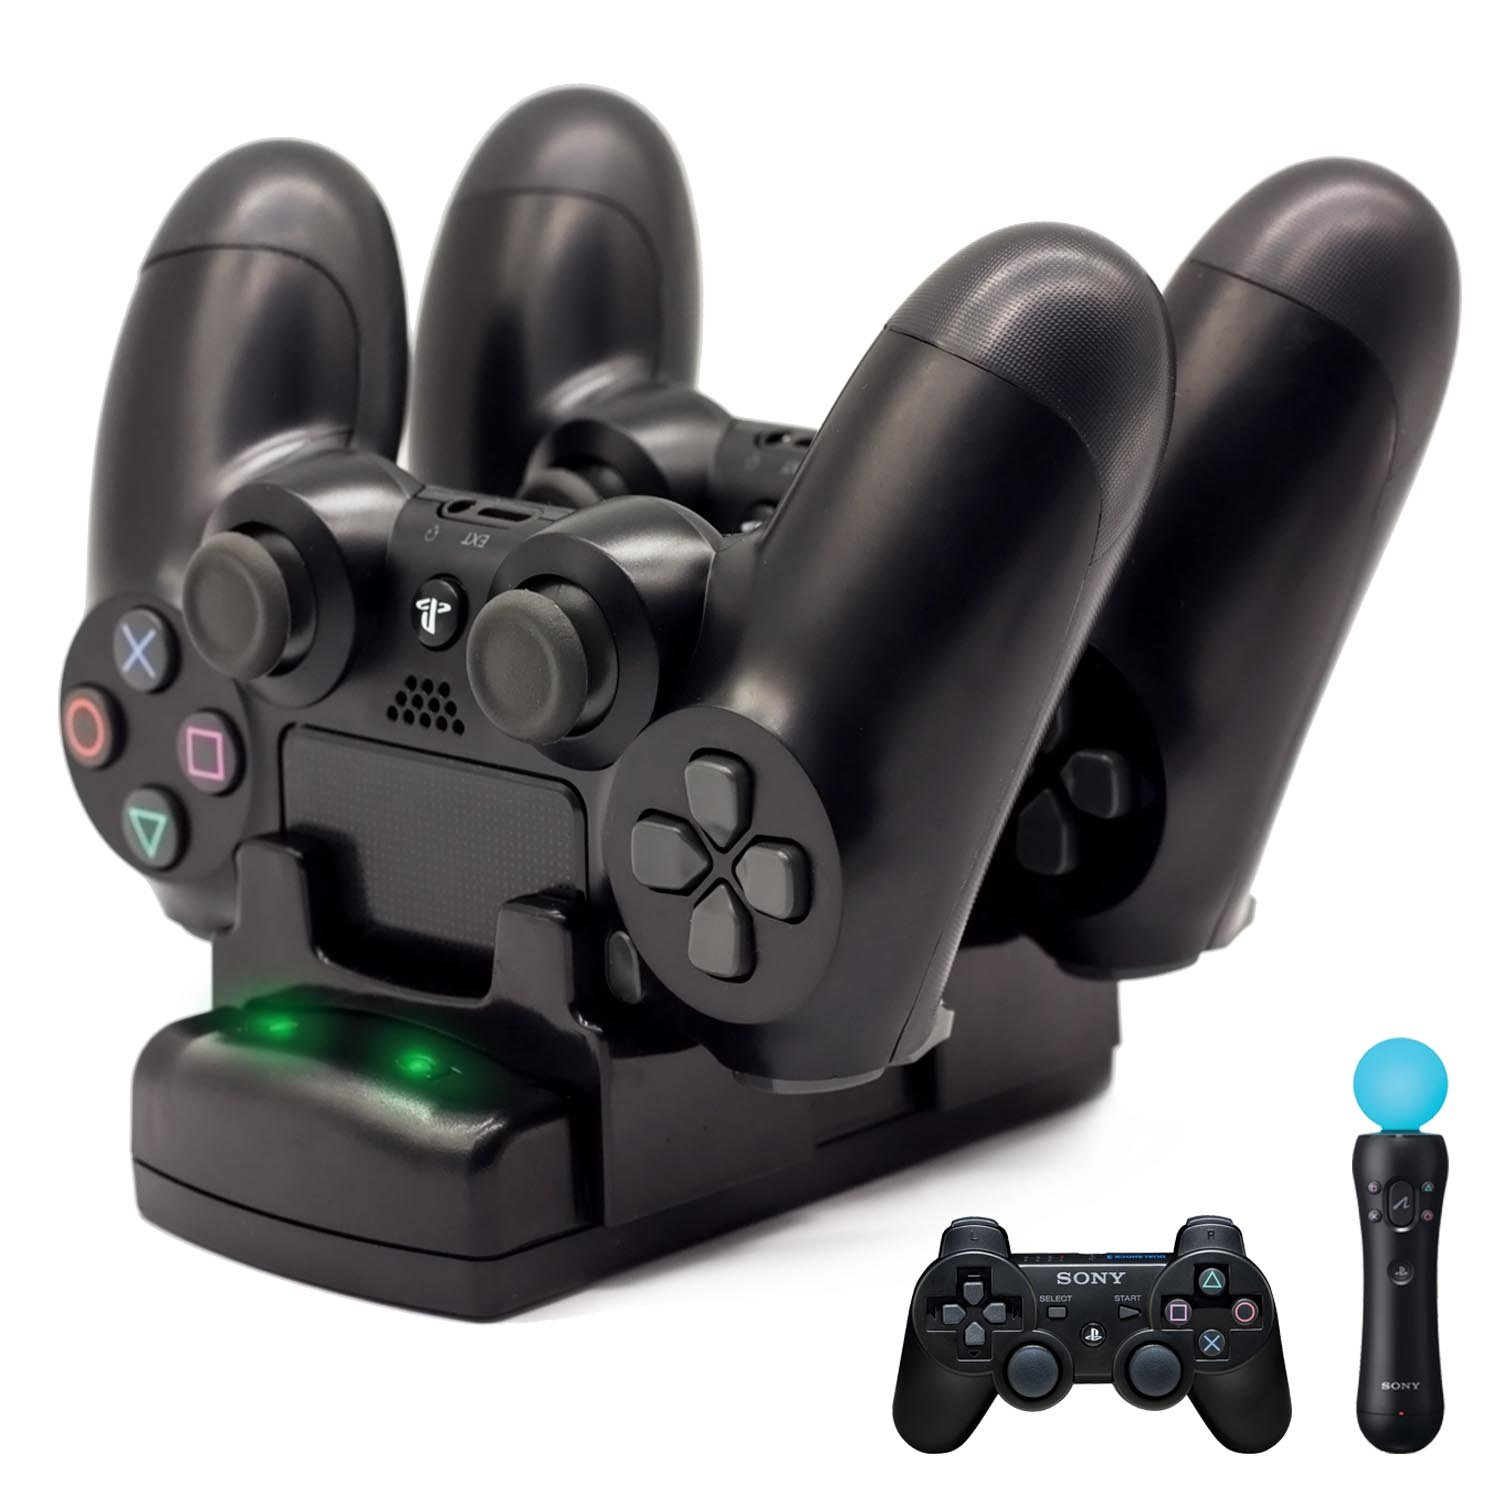 PS4/PS3 Controller Charger, BRHE Playstation 4/PS4 Pro/PS4 Slim/PS3/PS3 Move Controller Charger Charging Docking Station Stand USB Fast Charging Station for Sony PS4/PS3 Controller--Black by BRHE